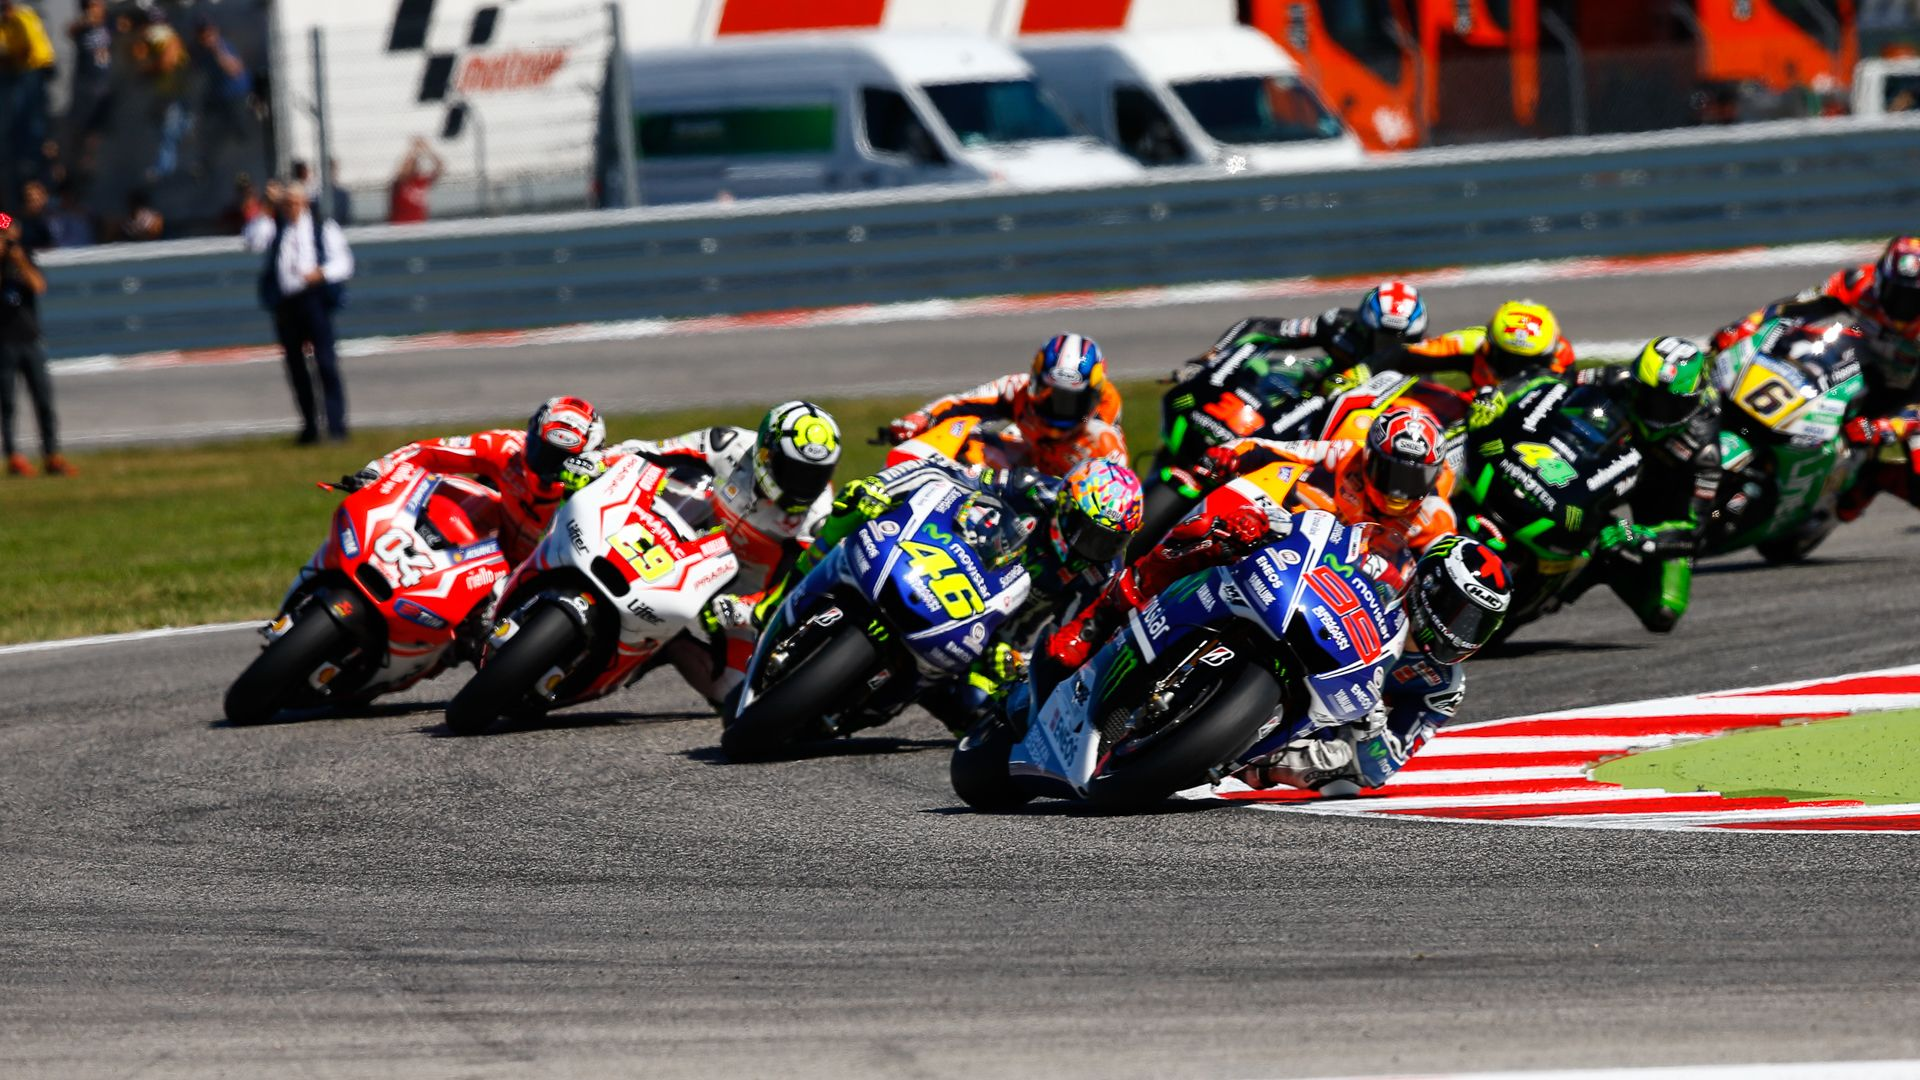 Valentino Rossi Movistar Yamaha MotoGP Wallpaper free desktop | HD Wallpapers | Pinterest ...